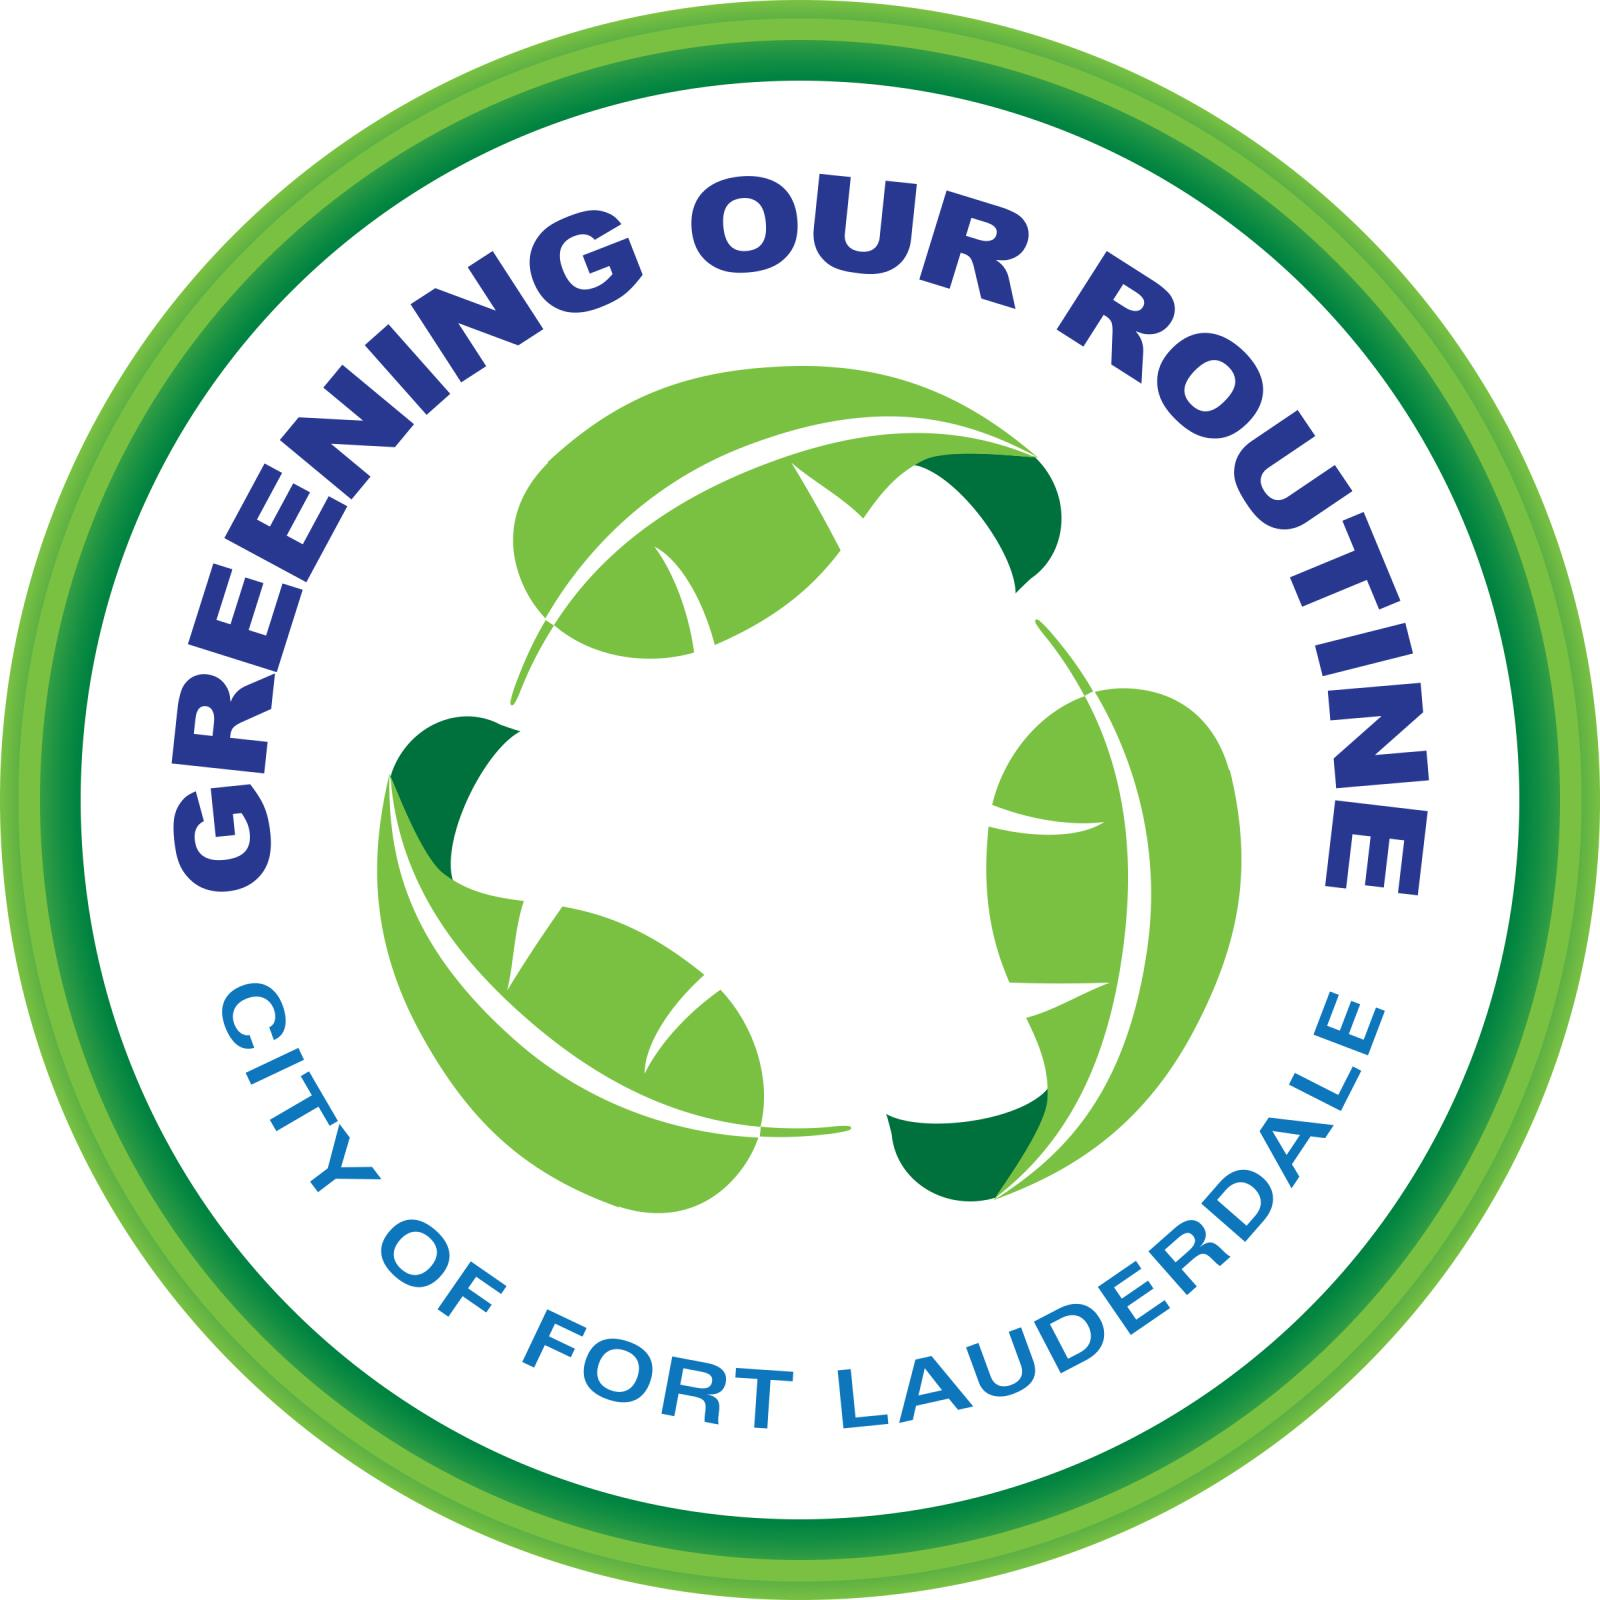 2028 Greening Our routine Logo_lrg